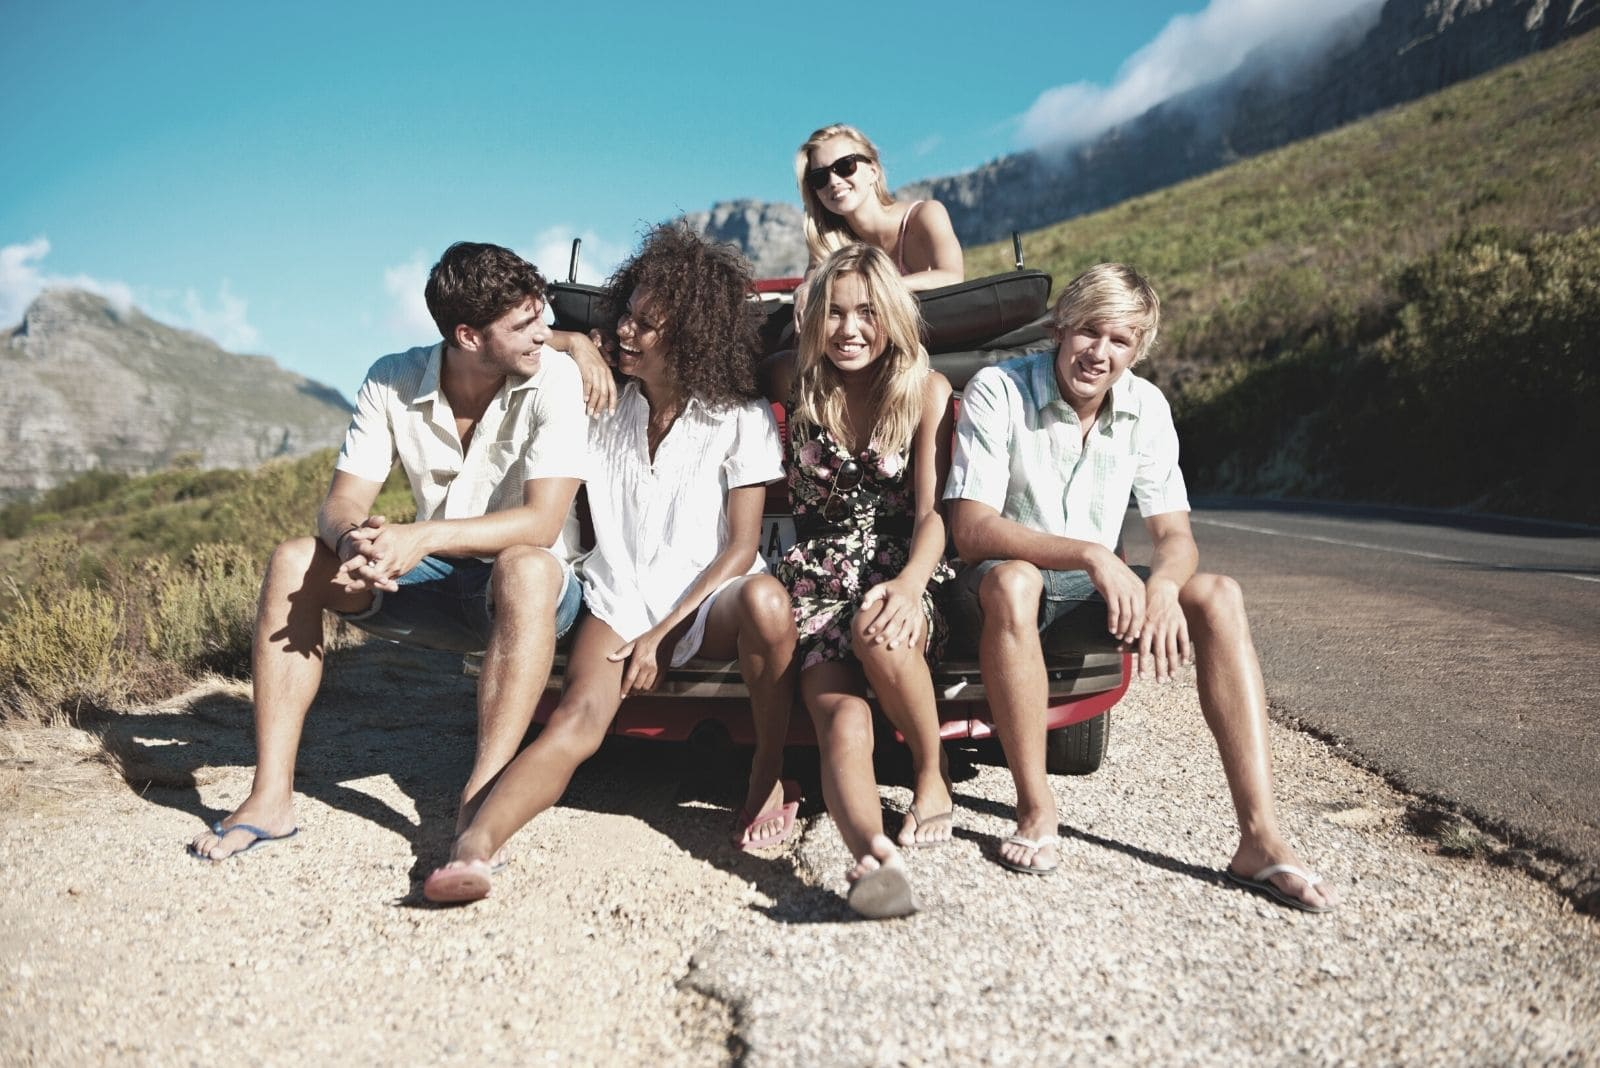 group of young friends sitting on the car bump while on a road trip